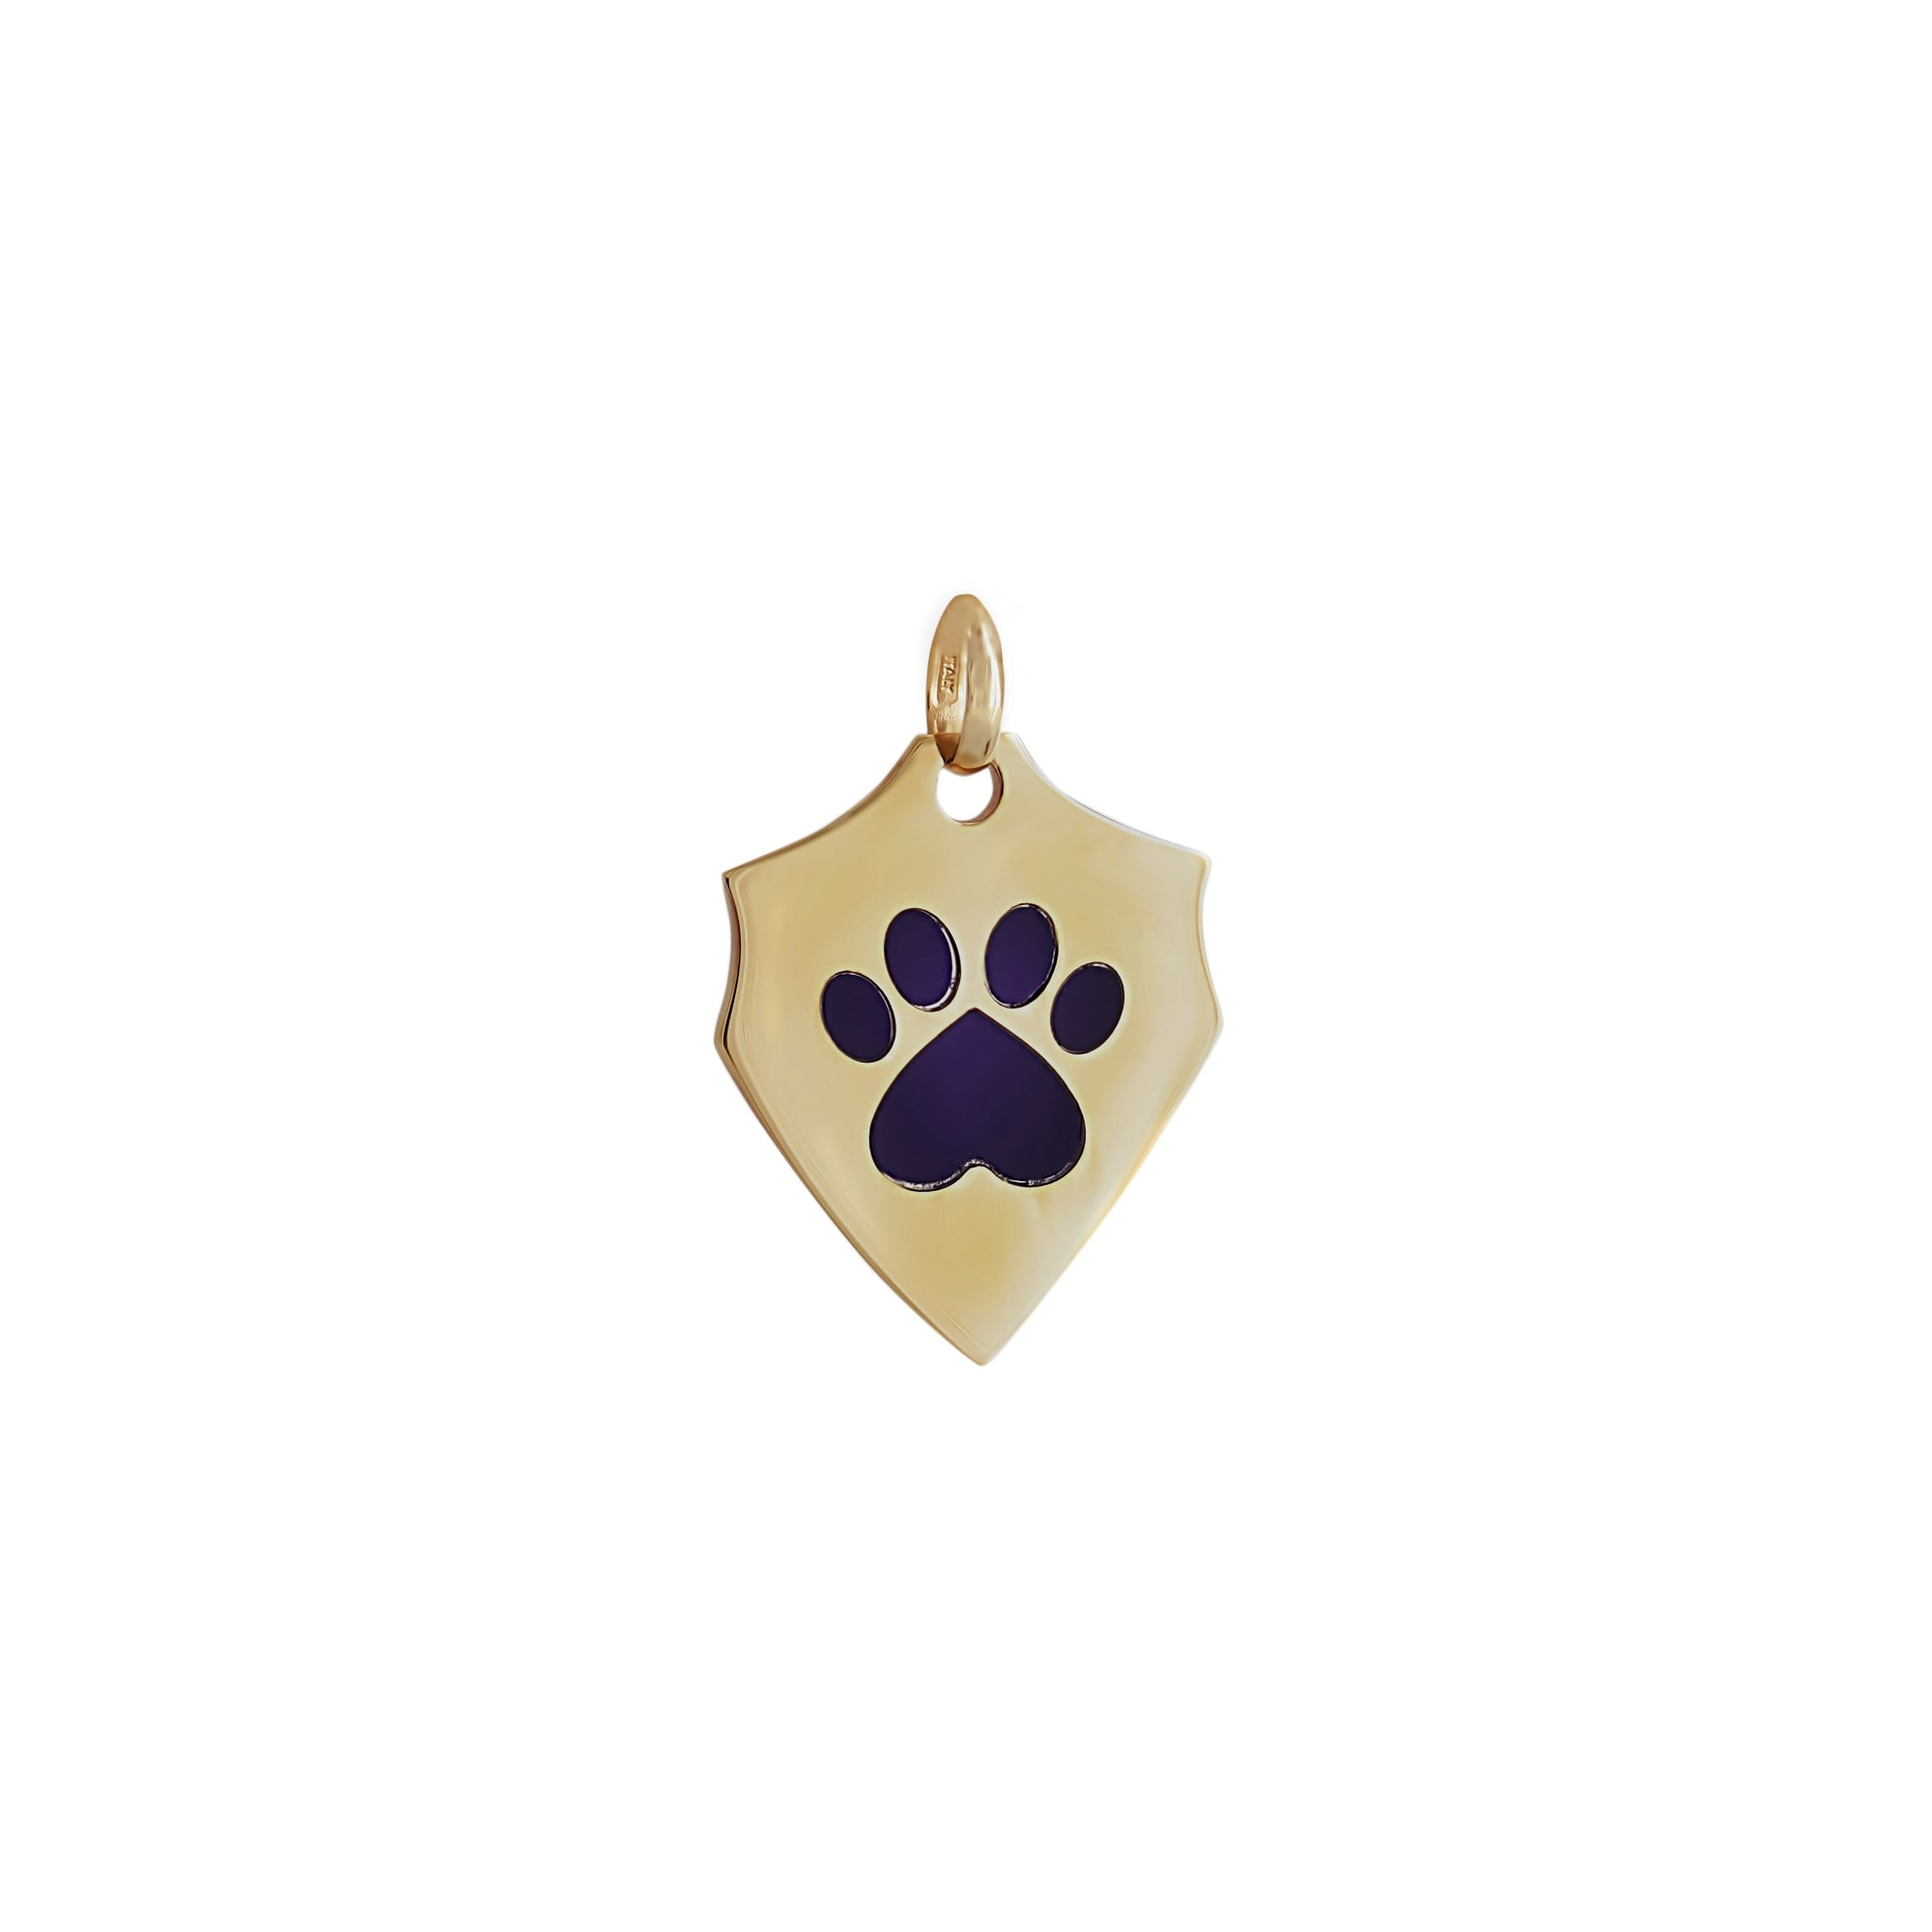 Our Cause for Paws 14k Yellow Gold Shield with Lapis Inlay Paw Charm